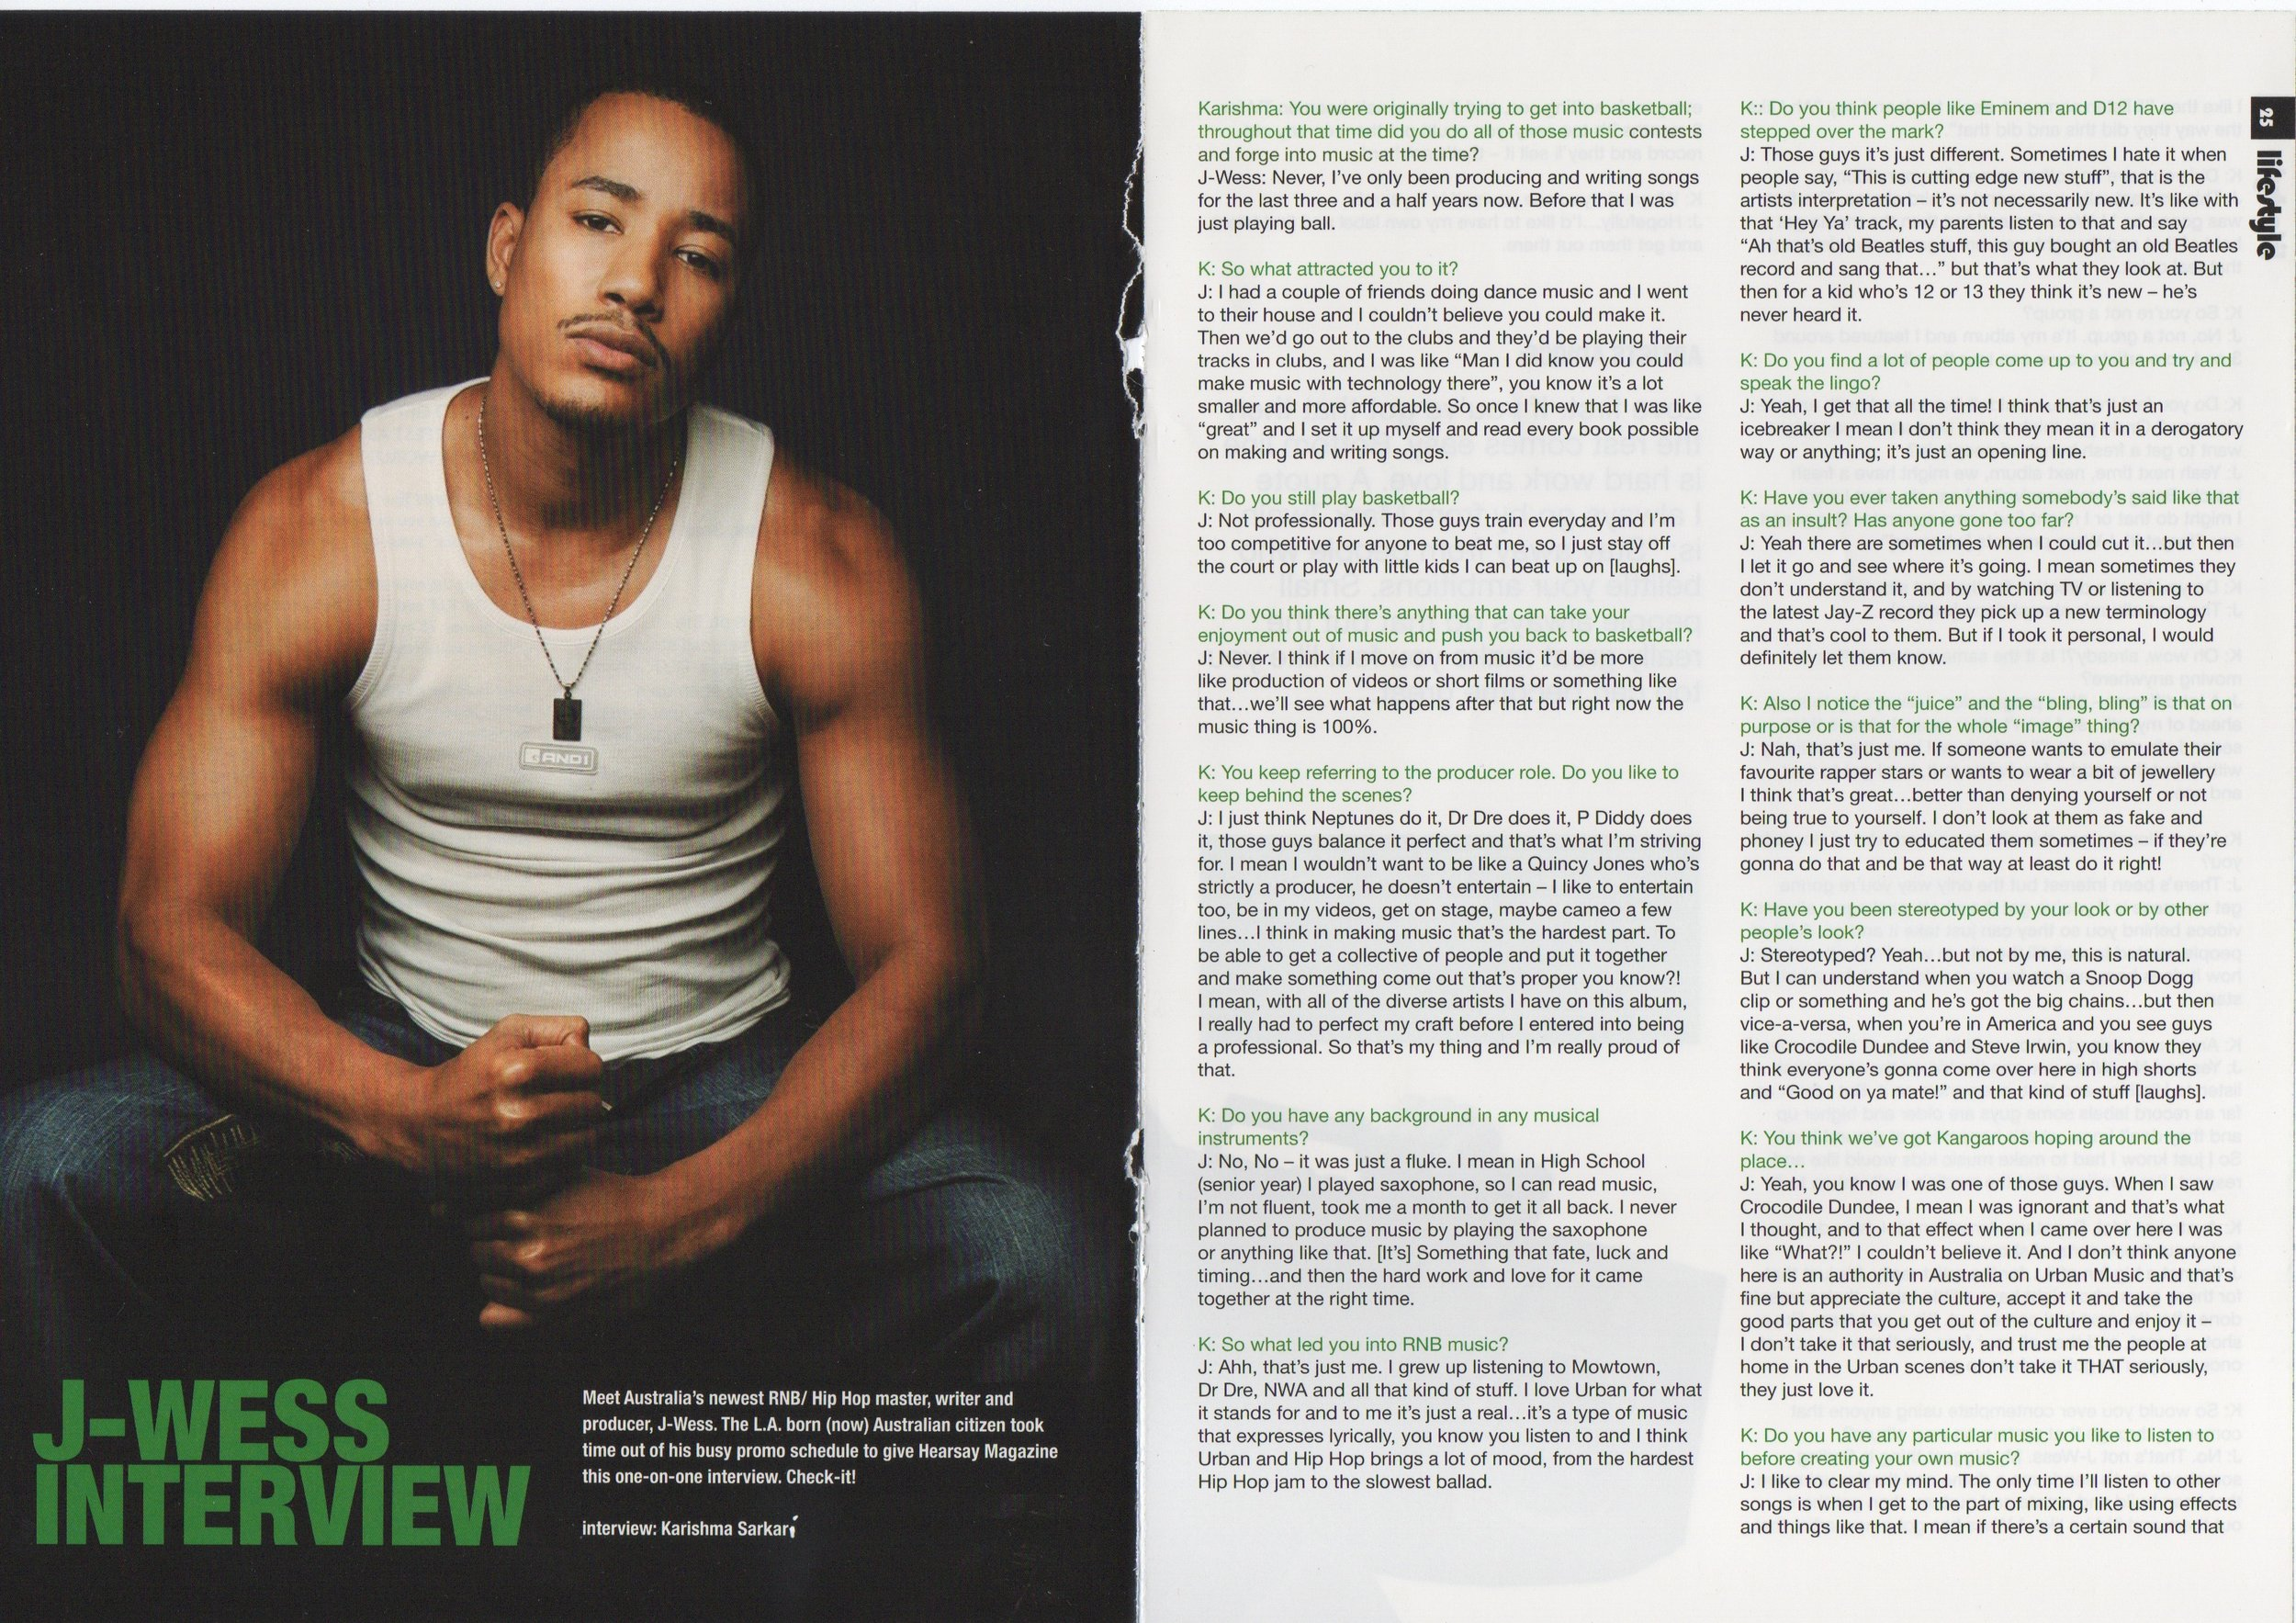 J-Wess Feature Article pt 1 - Hearsay Magazine